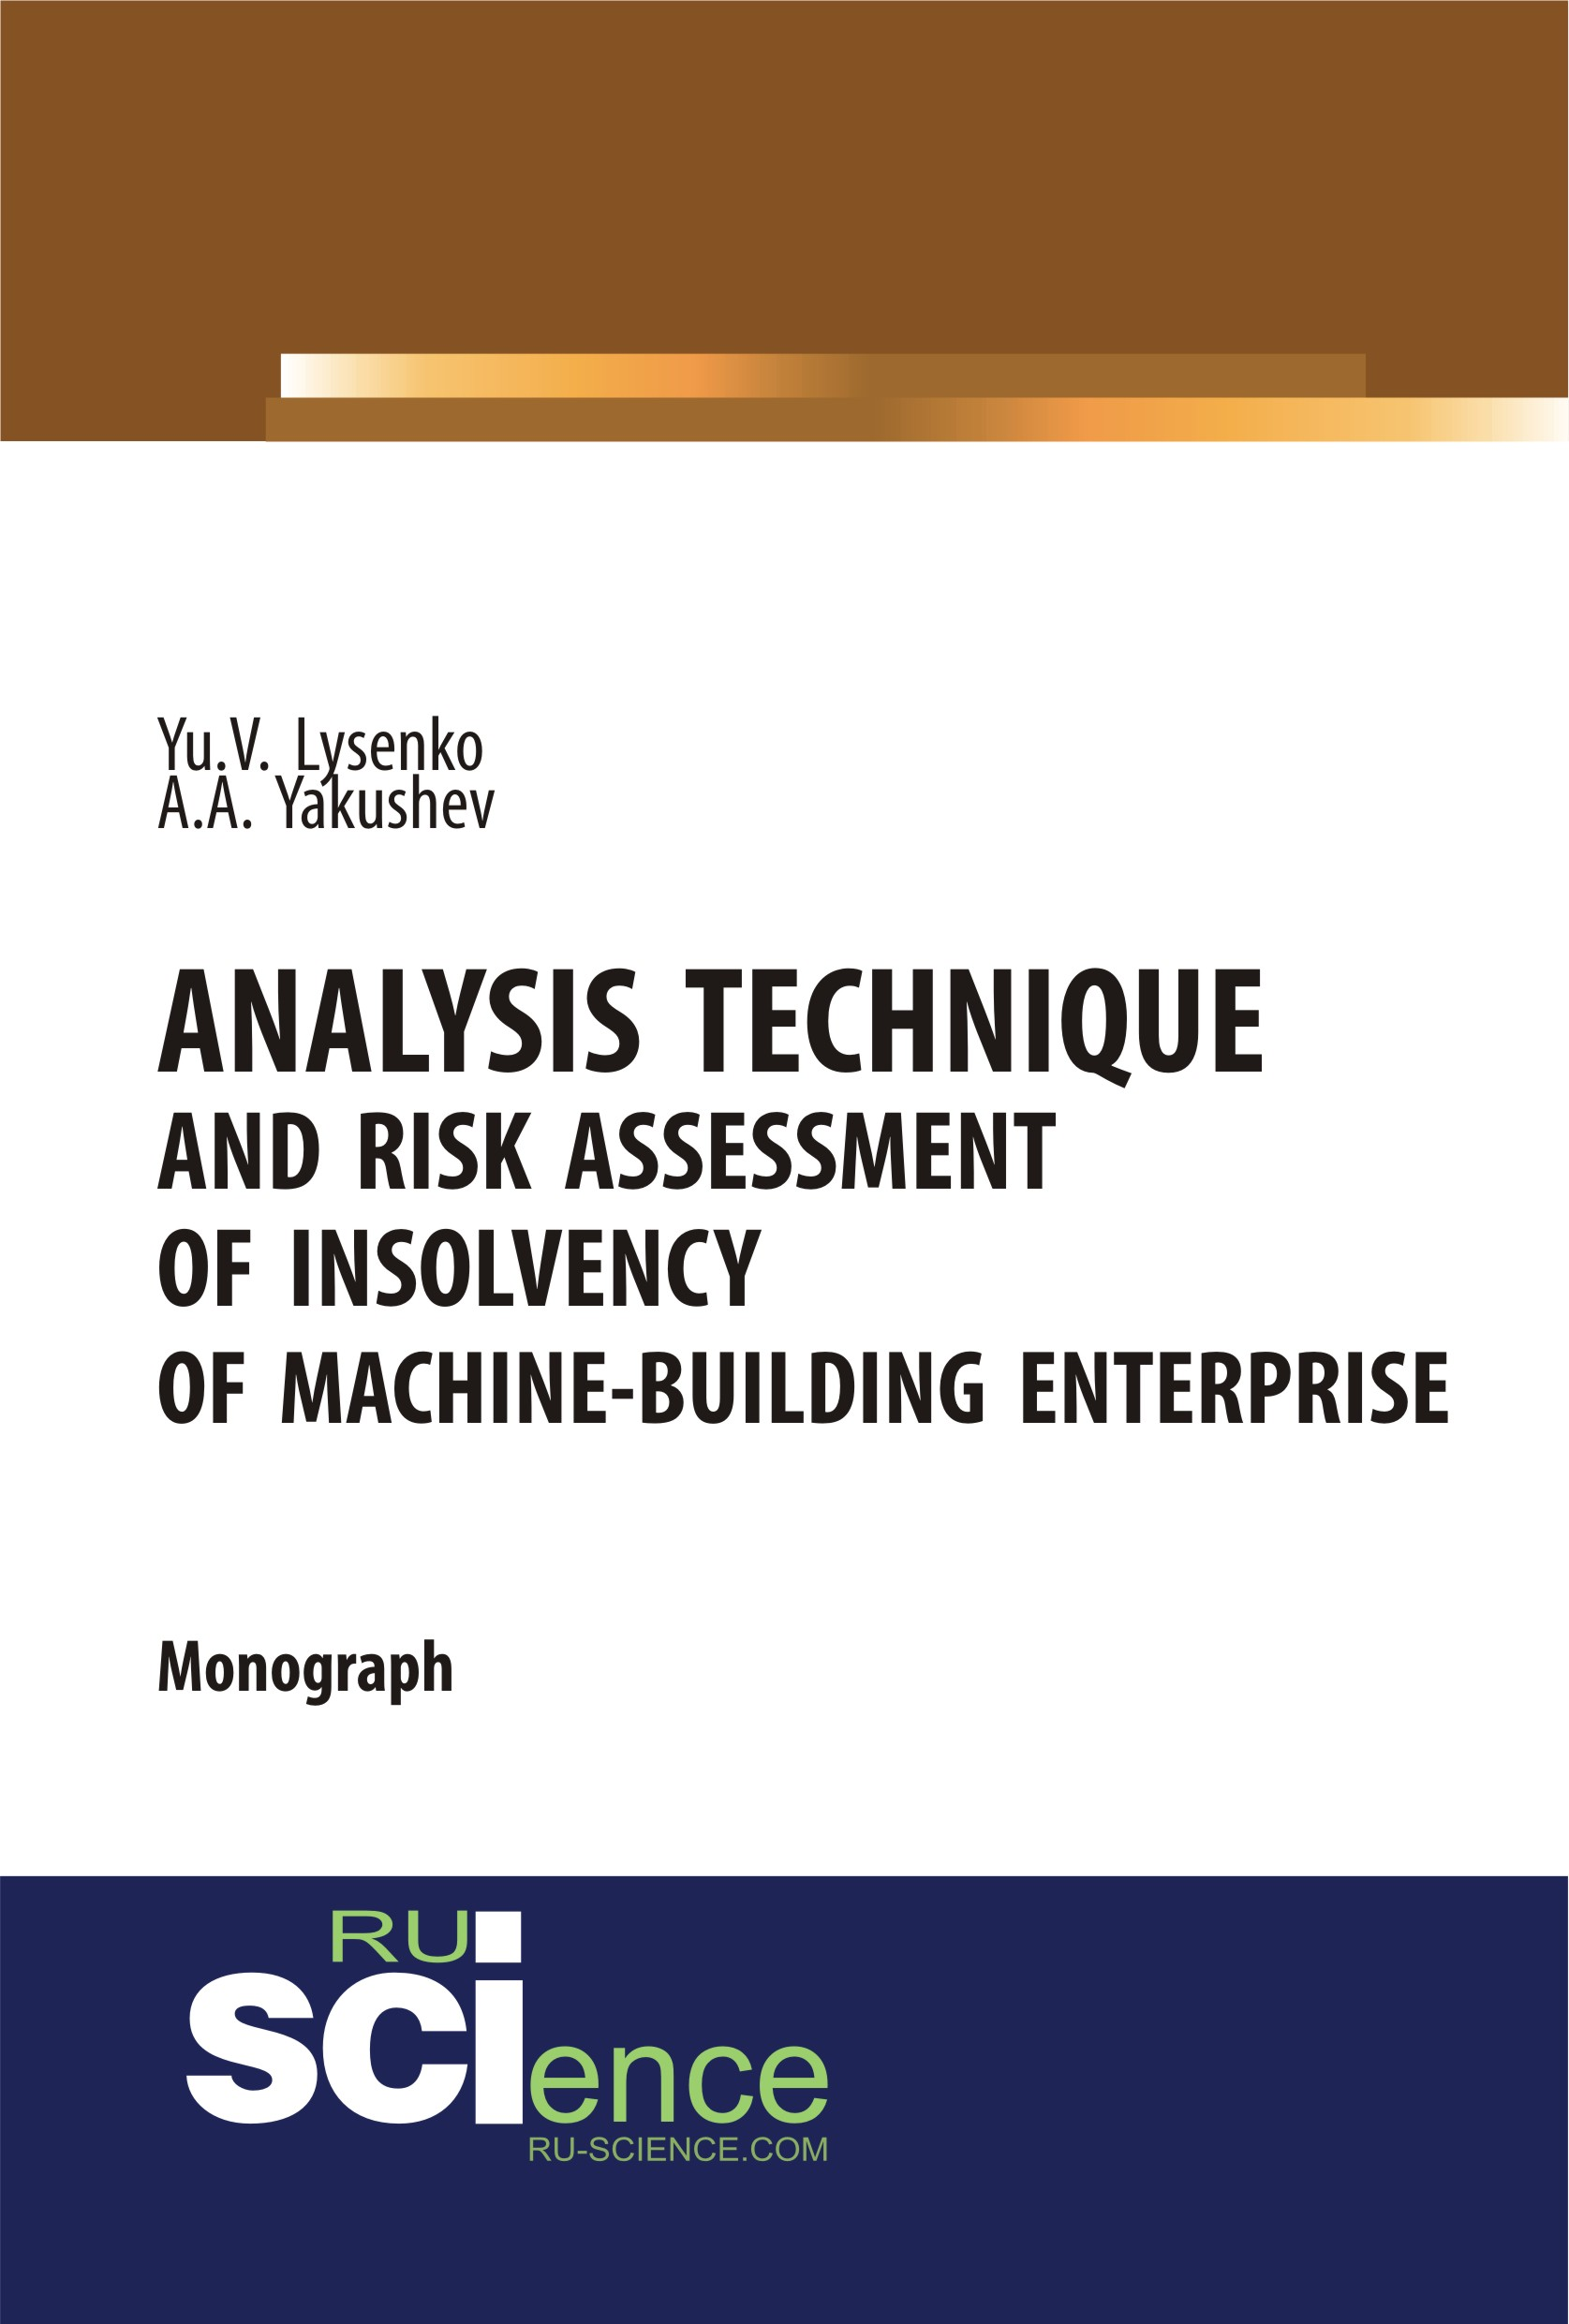 Ю. В. Лысенко Analysis technique and risk assessment of insolvency of machine-building enterprise the character analysis of the chinese traditional architecture by liang sicheng handai building